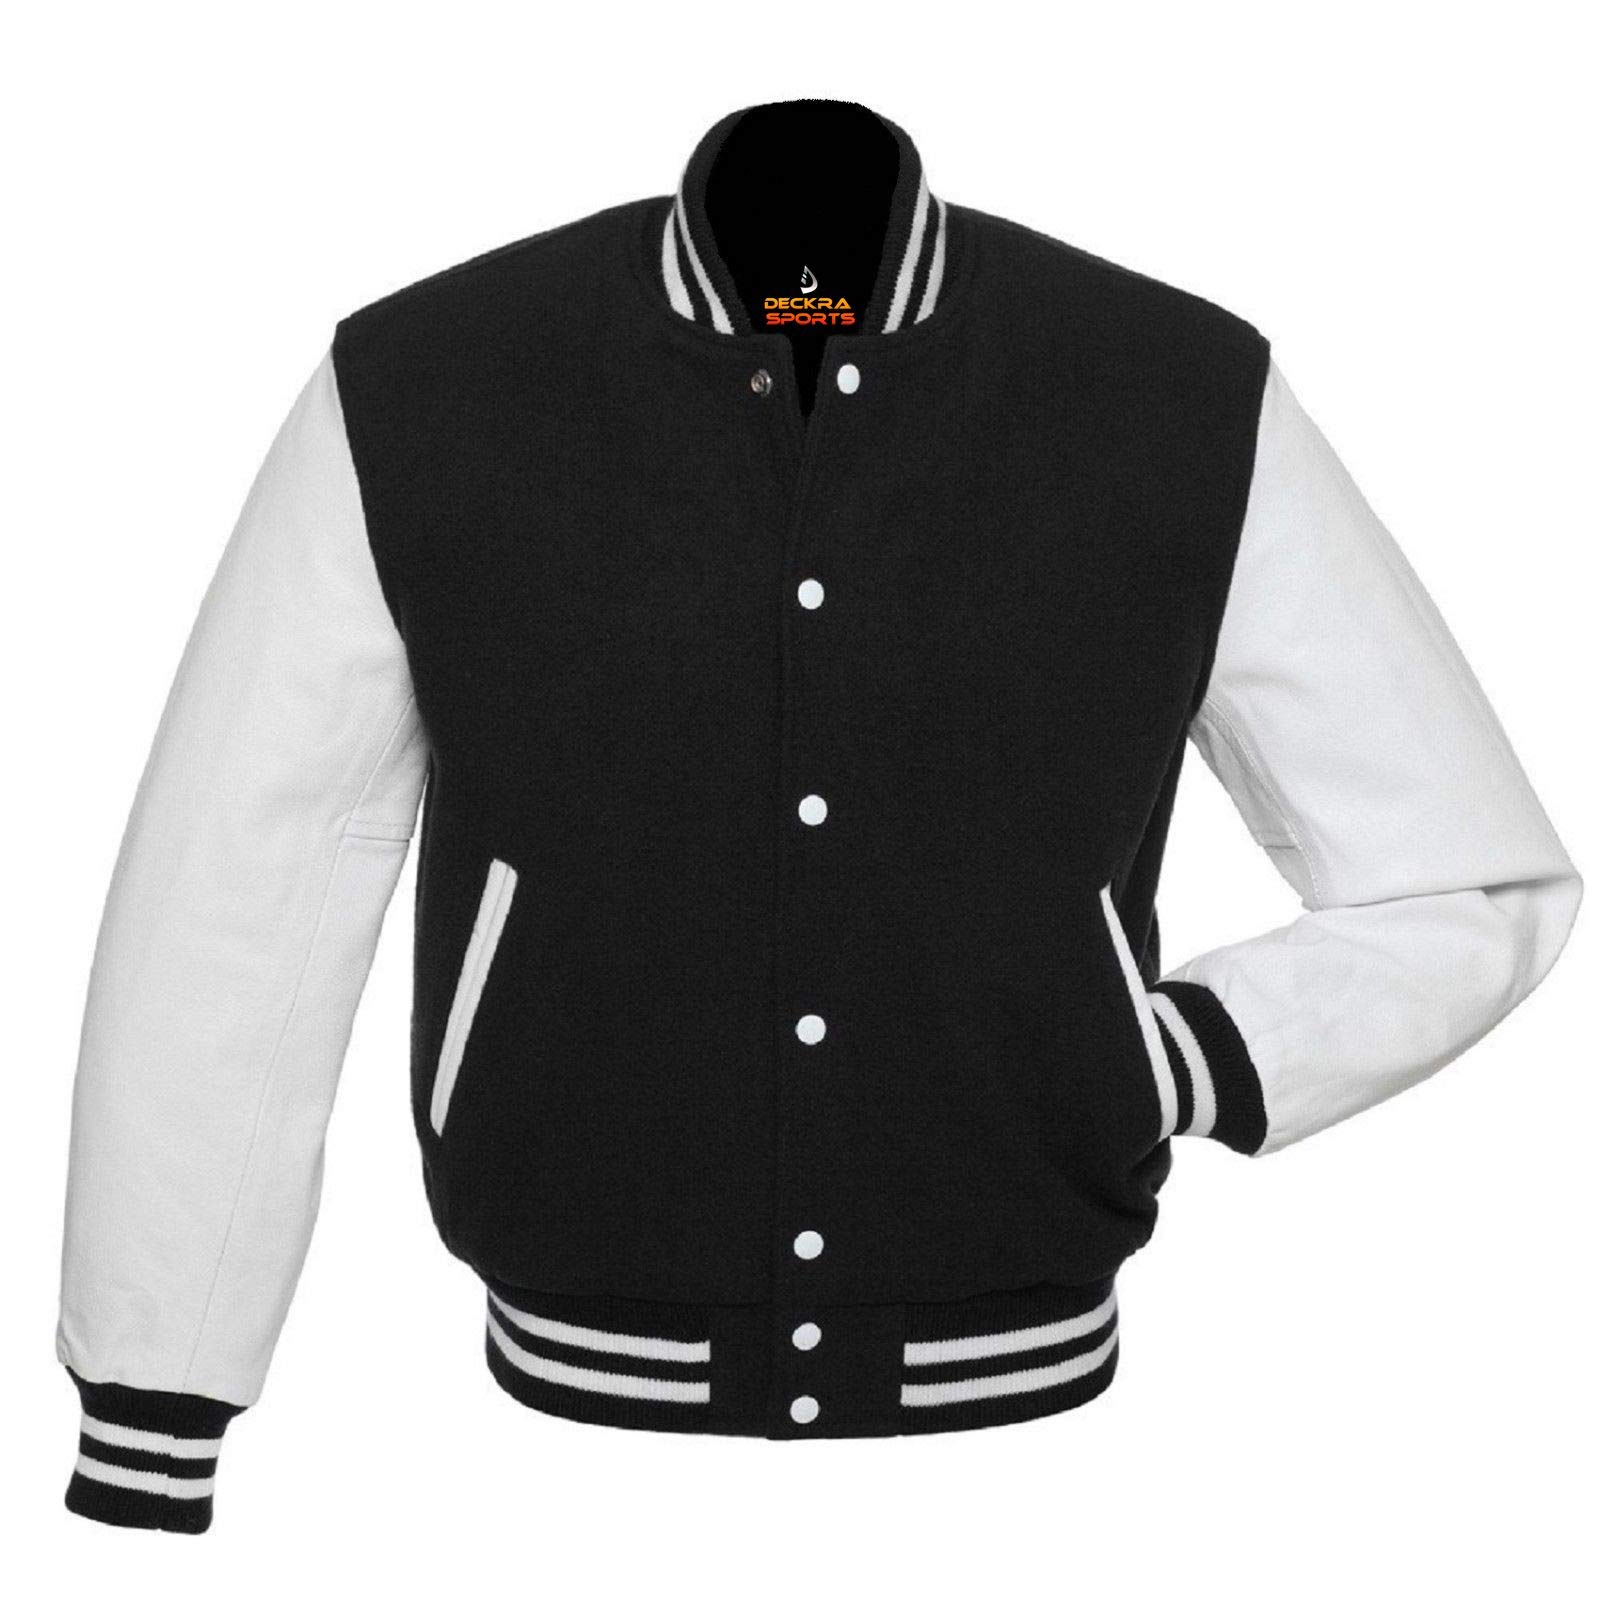 Men's Varsity Jacket Genuine Leather Sleeve and Wool Blend Letterman Boys College Varsity Jackets (Black/White, X-Small) by Deckra